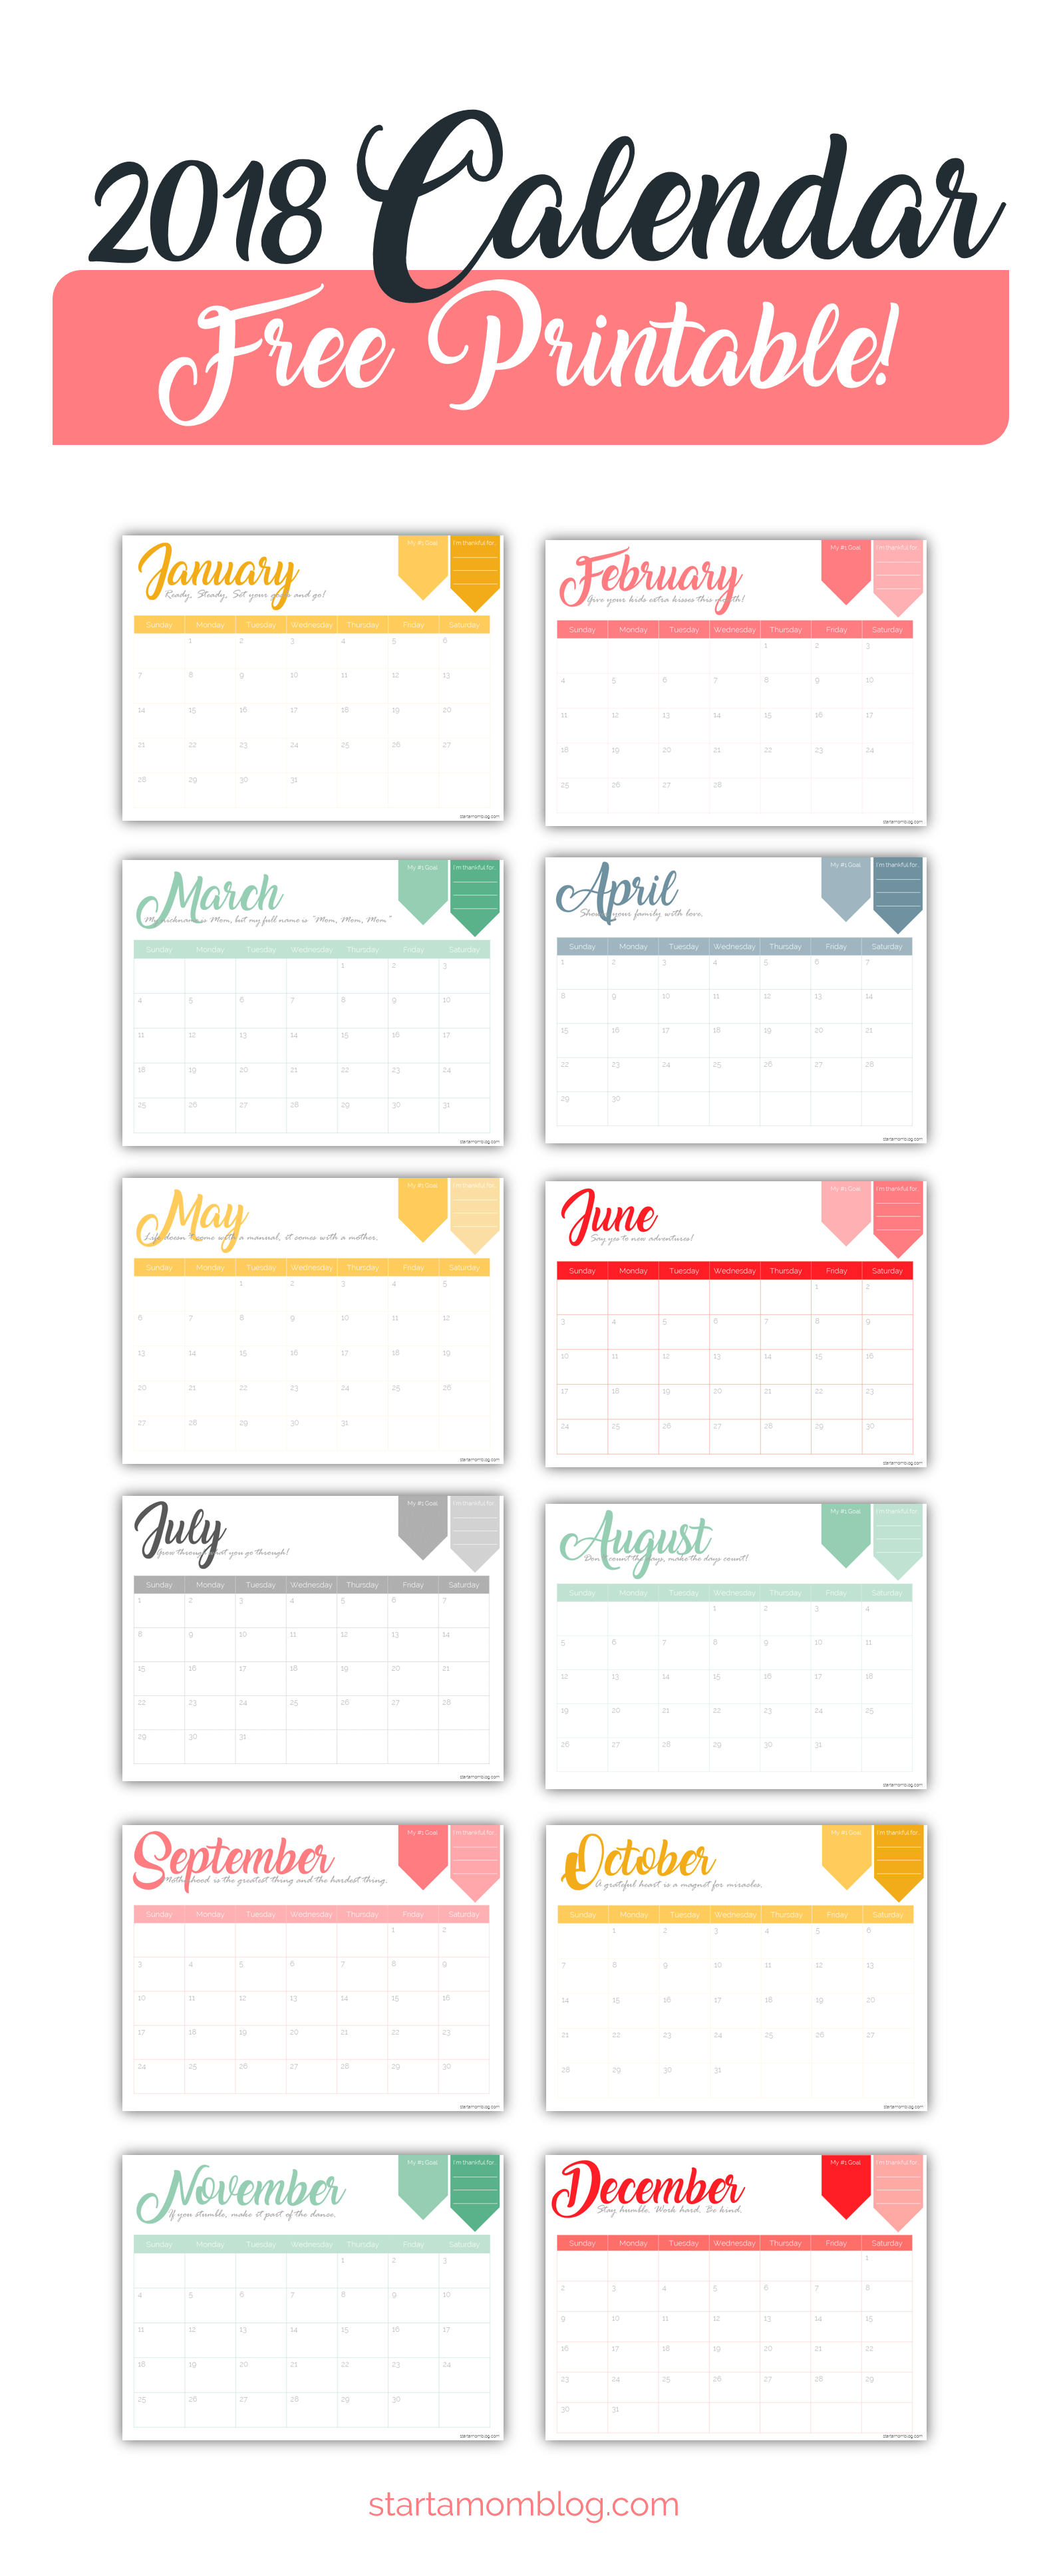 Calendar Template Free Printable  Start A Mom Blog  Time